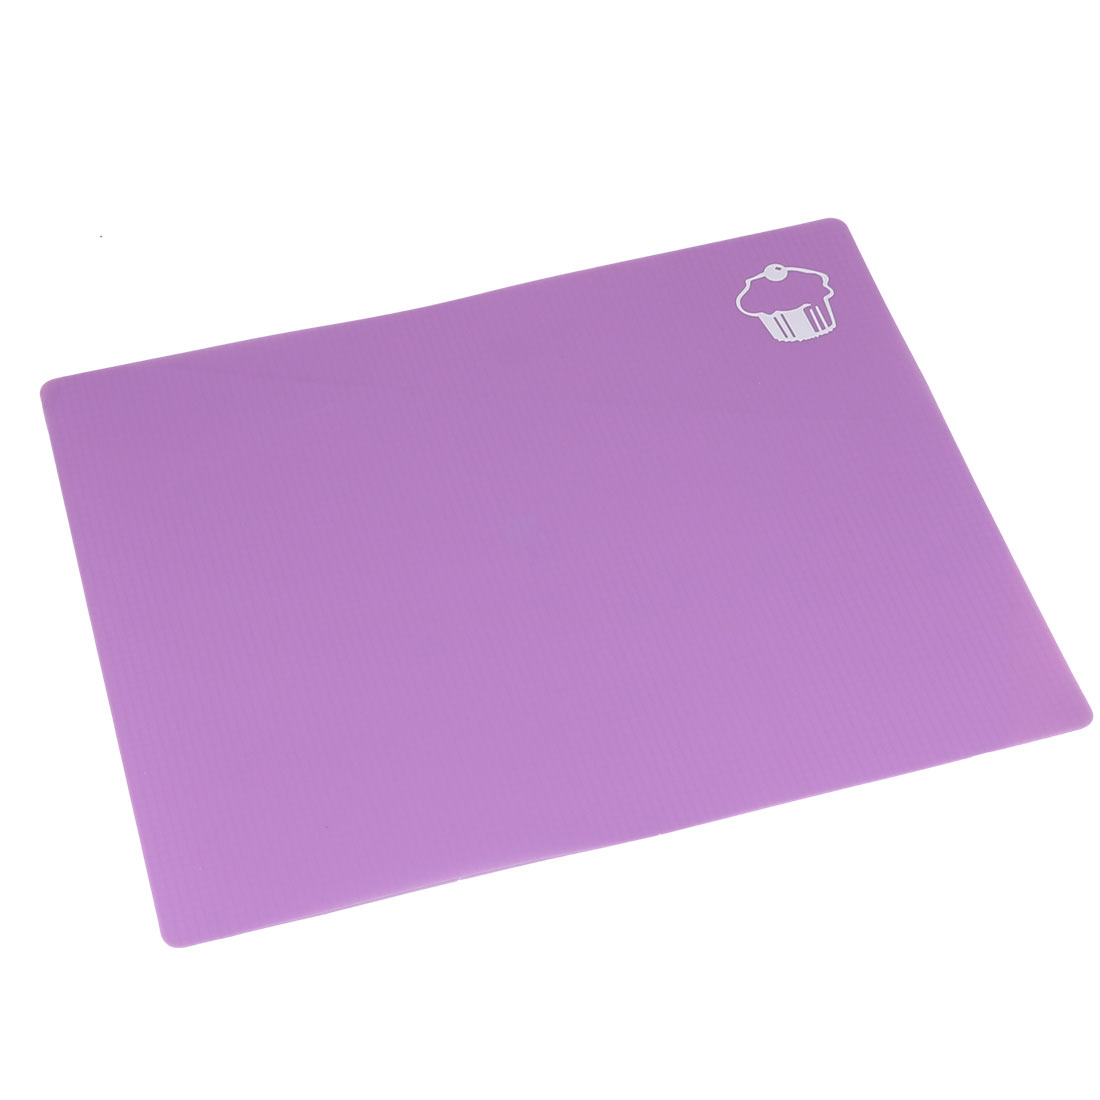 Kitchen Flexible Nonslip Plastic Vegetable Slicing Cutting Chopping Board Mat Purple